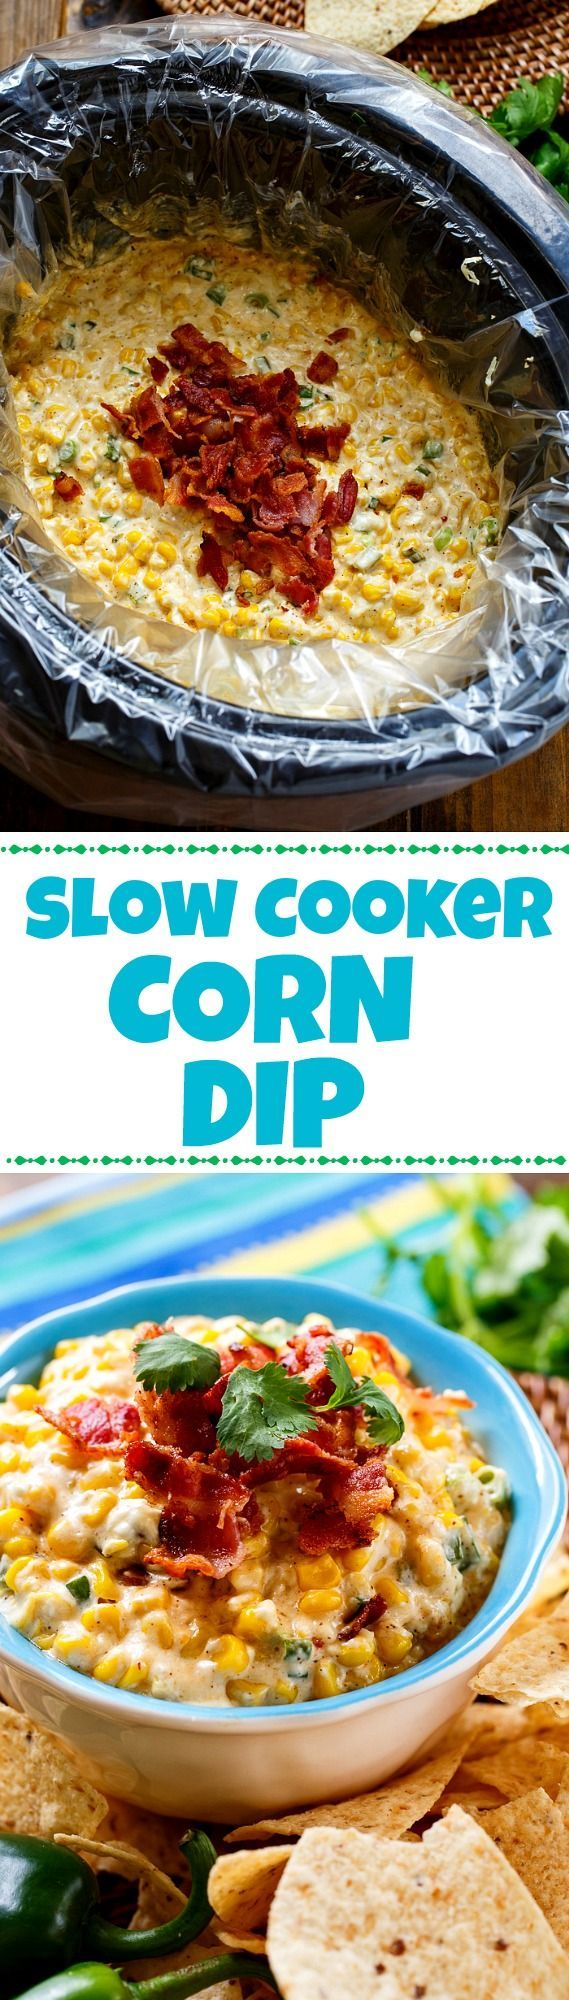 Slow Cooker Corn Dip with bacon and jalapenos. Makes an easy game day appetizer and no clean up if you use a Reynolds Slow Cooker Liner!